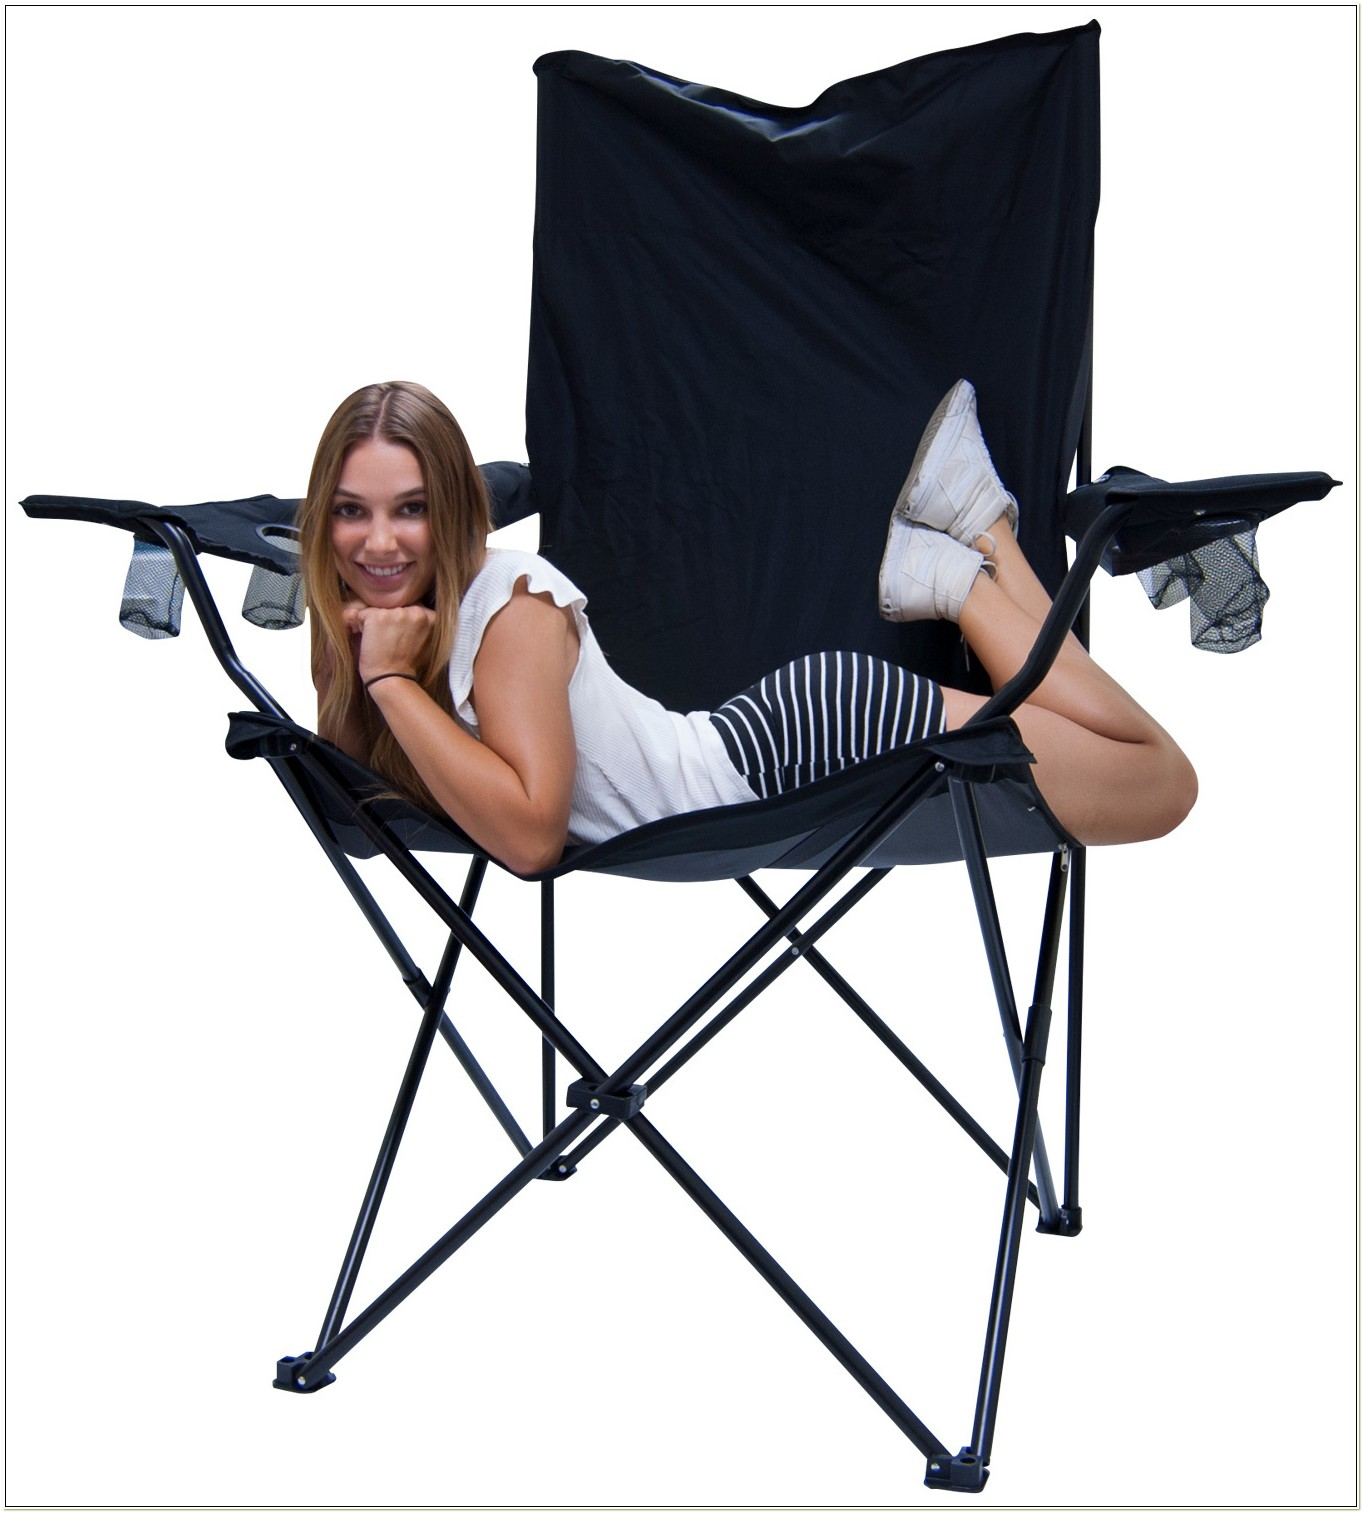 Outdoor Kingpin Giant Folding Chair